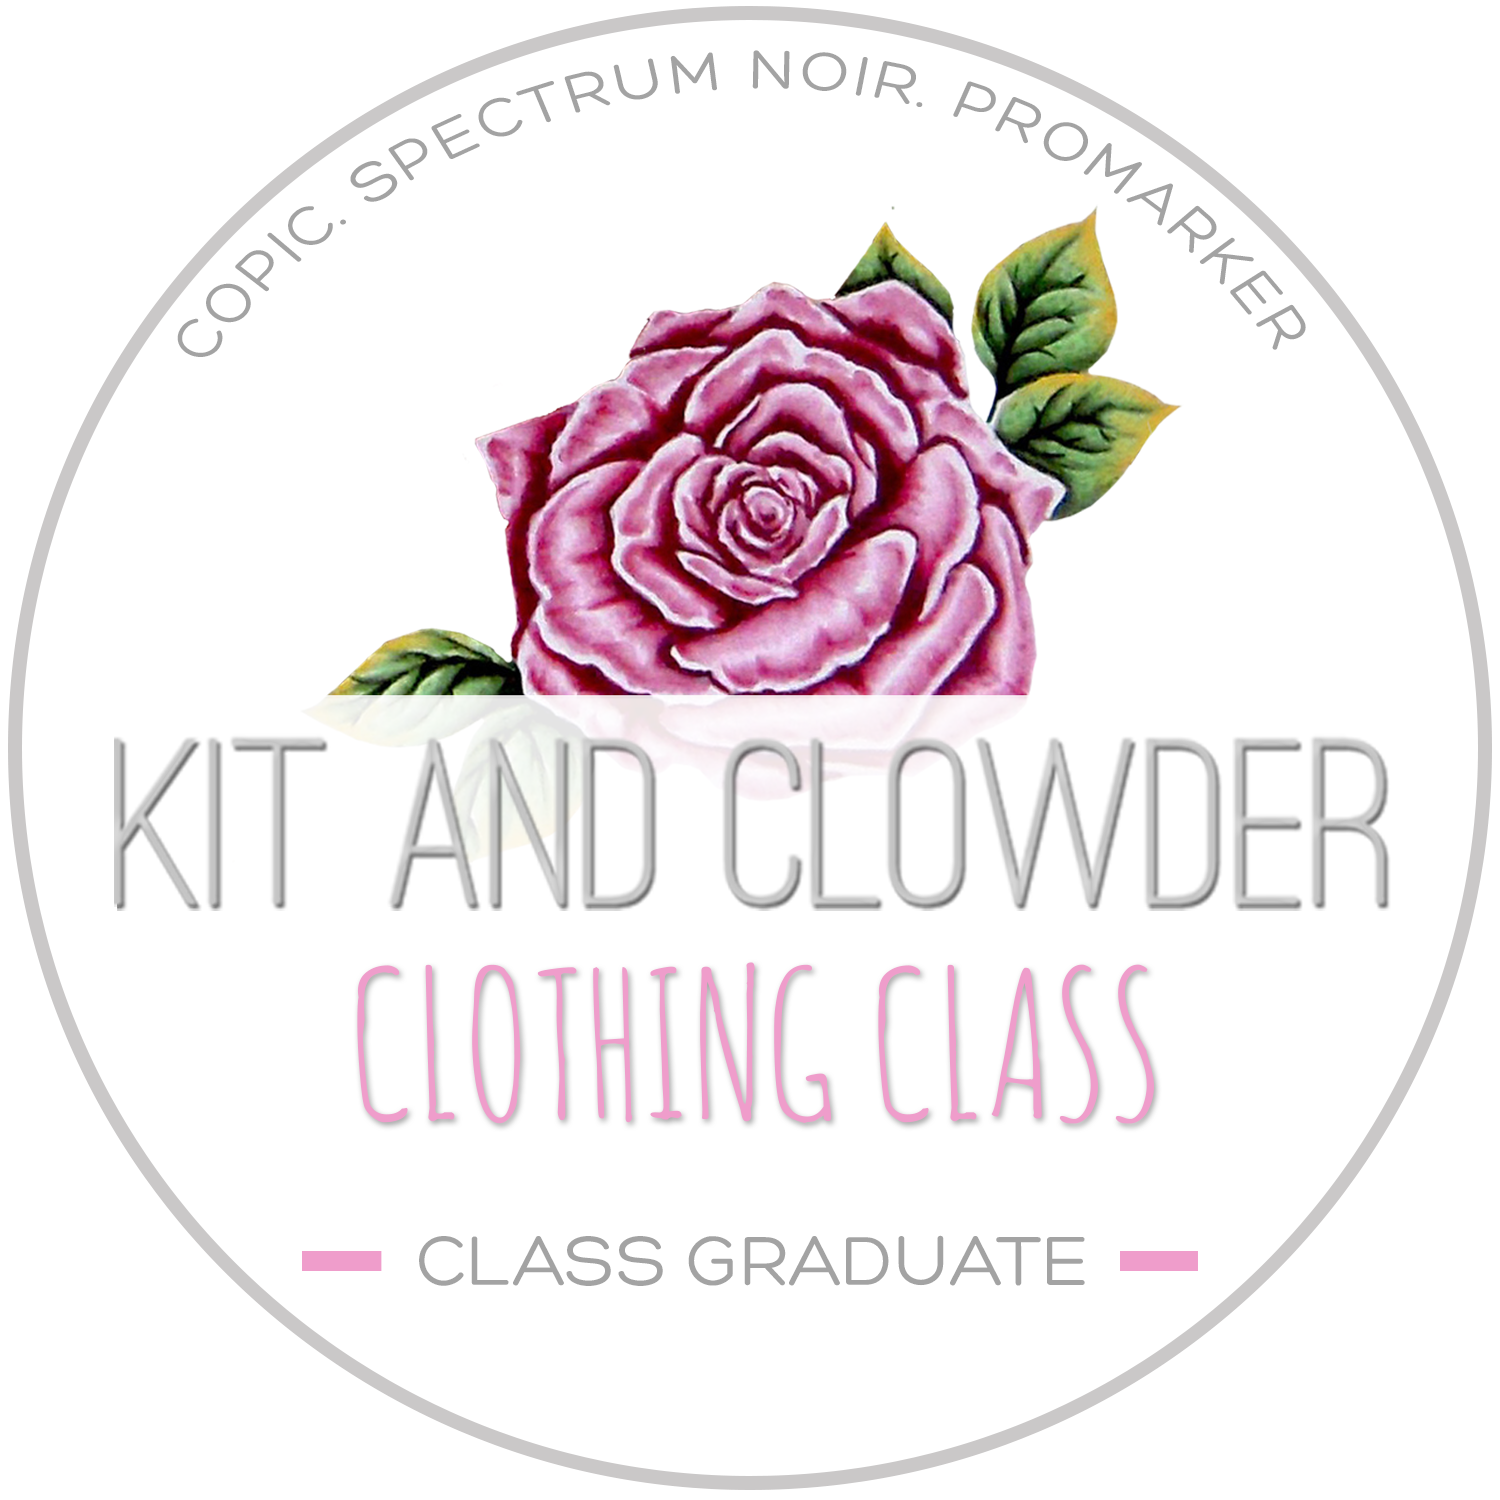 Kit and Clowder Clothing Technique Class Graduate